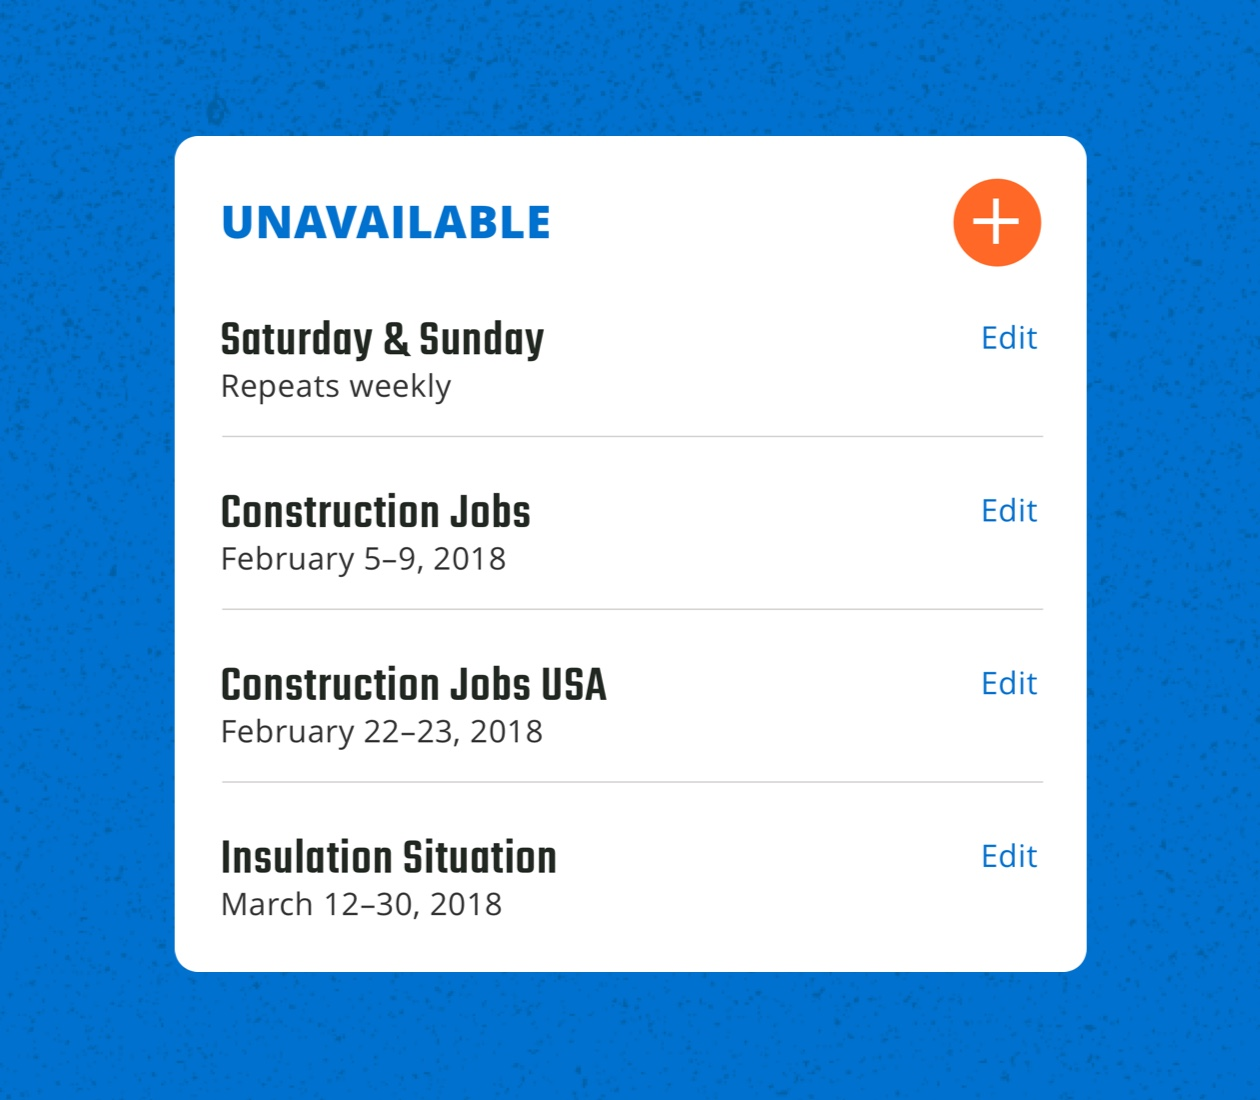 A card from the Tradeworthy Jobs app that visualizes a user's availability.